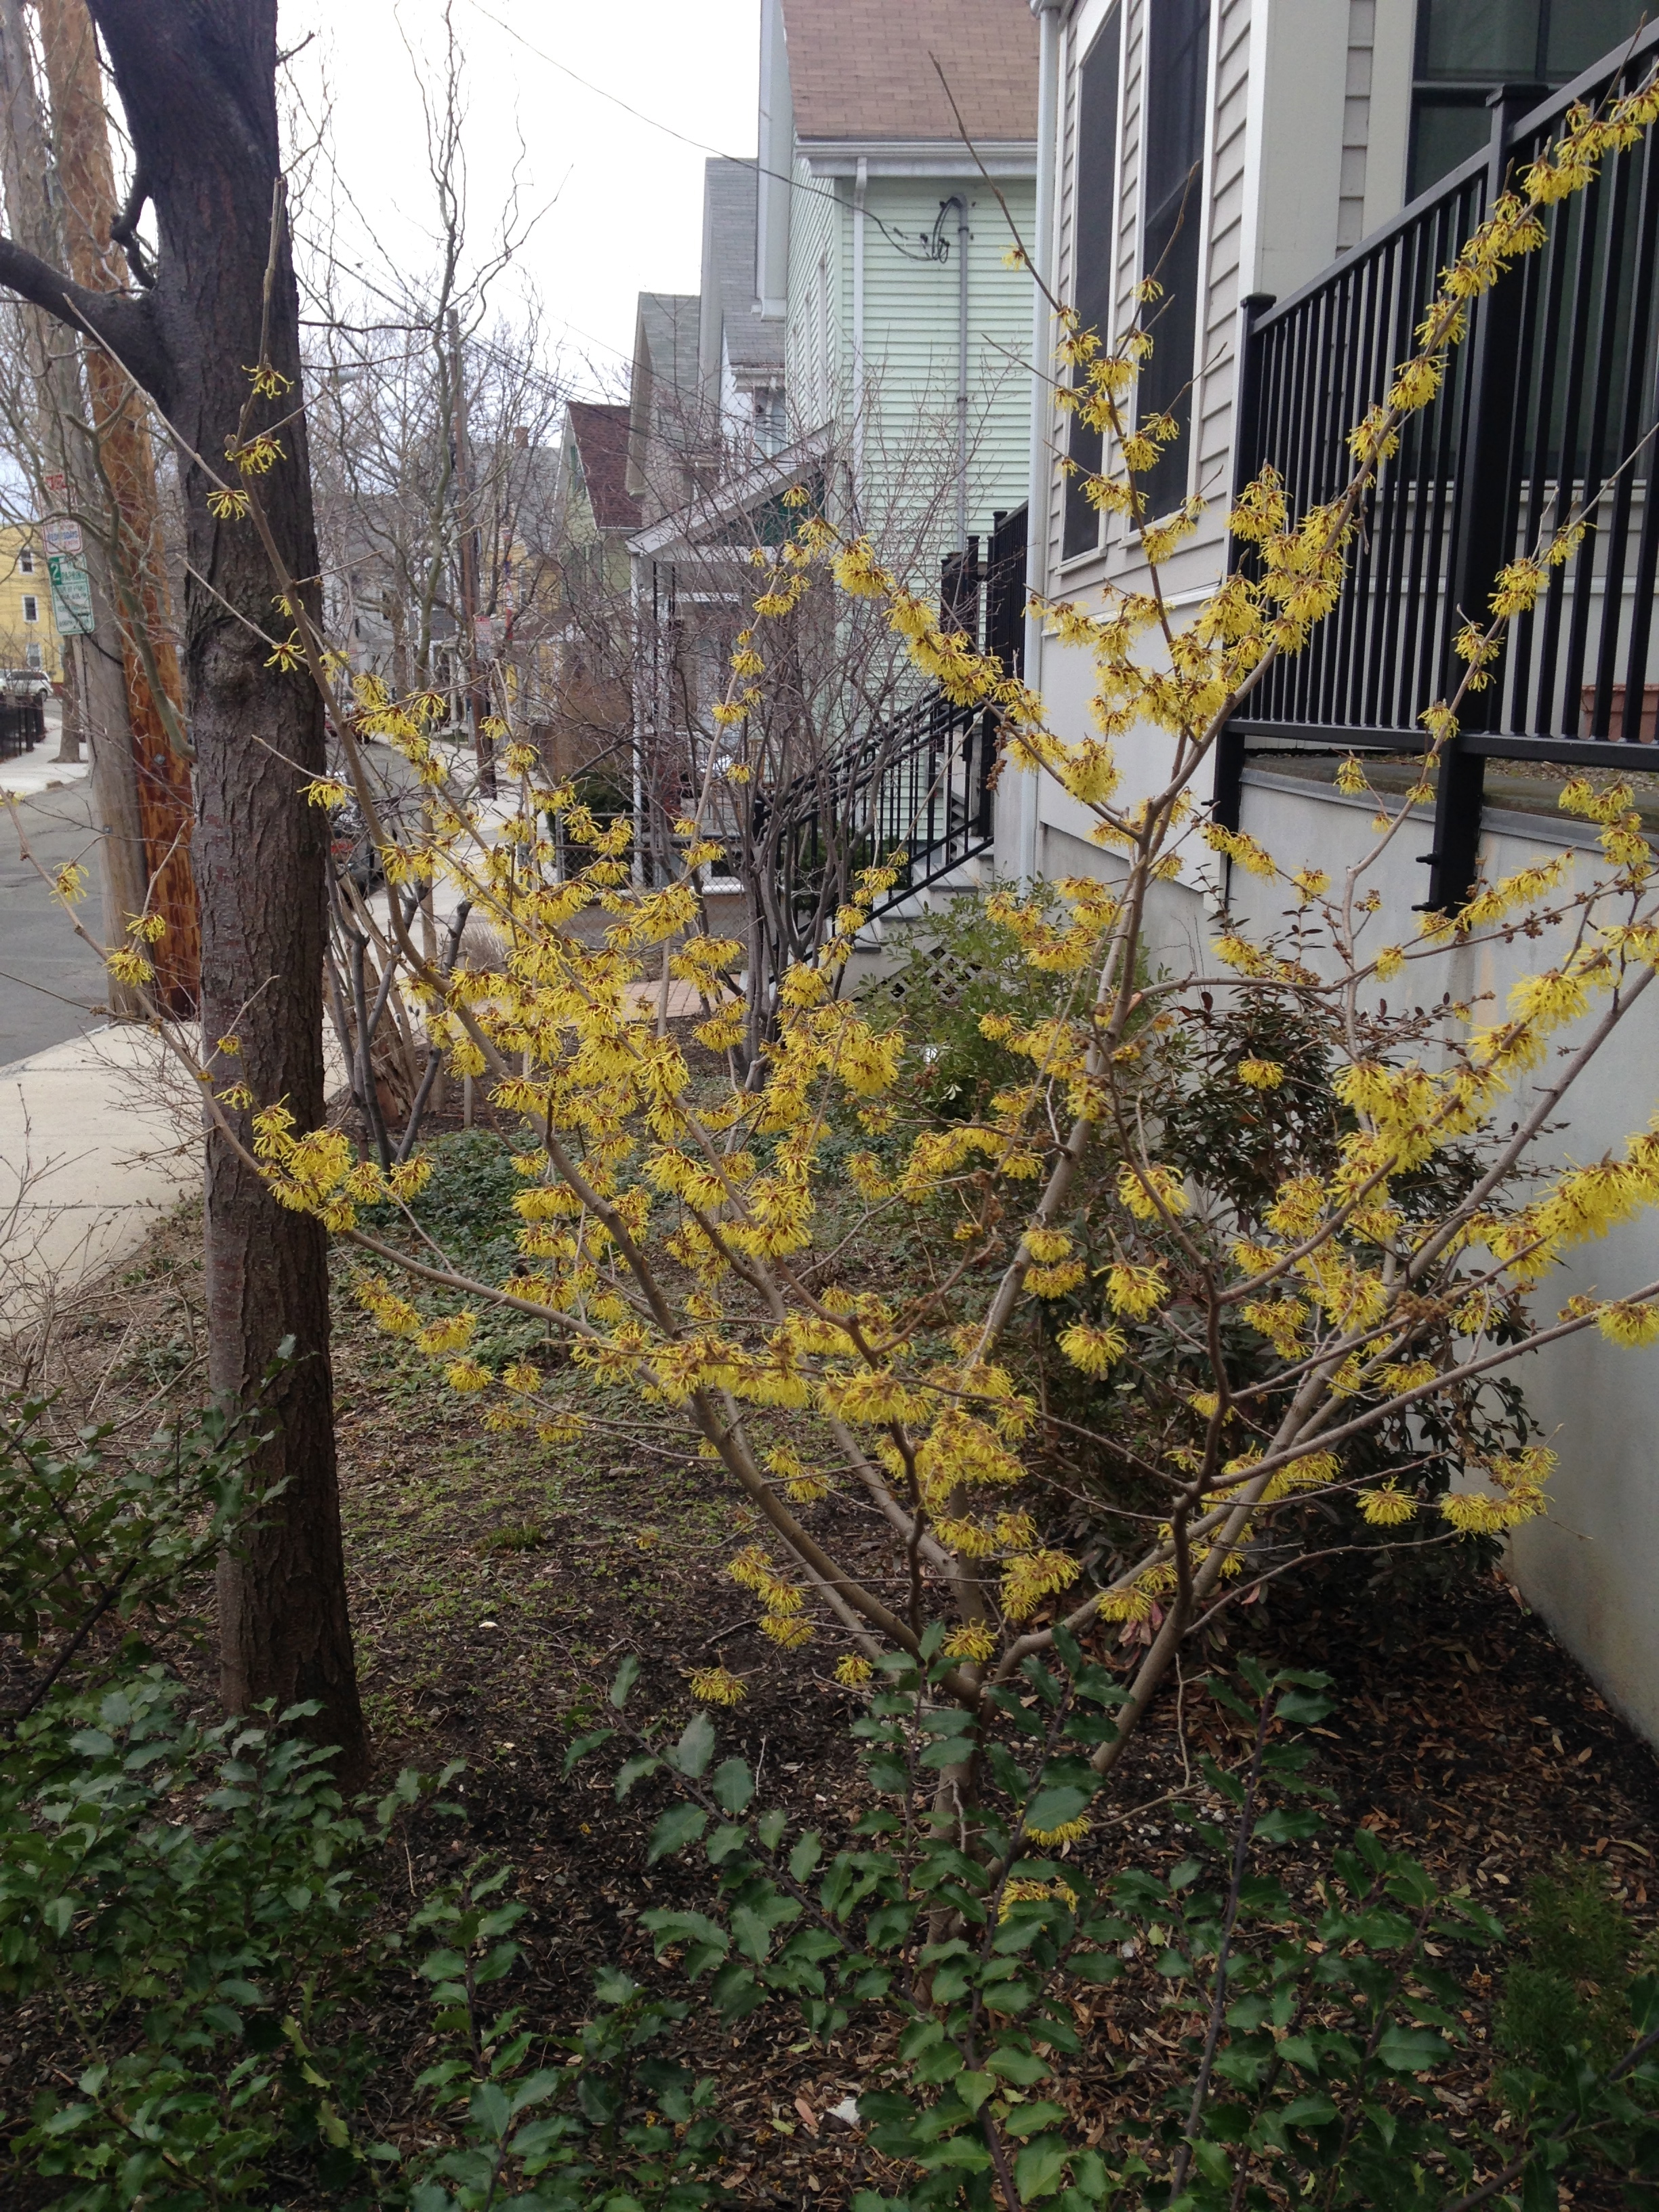 Hybrid witch hazel provides striking late-Winter/early-Spring color to an otherwise drab landscape.